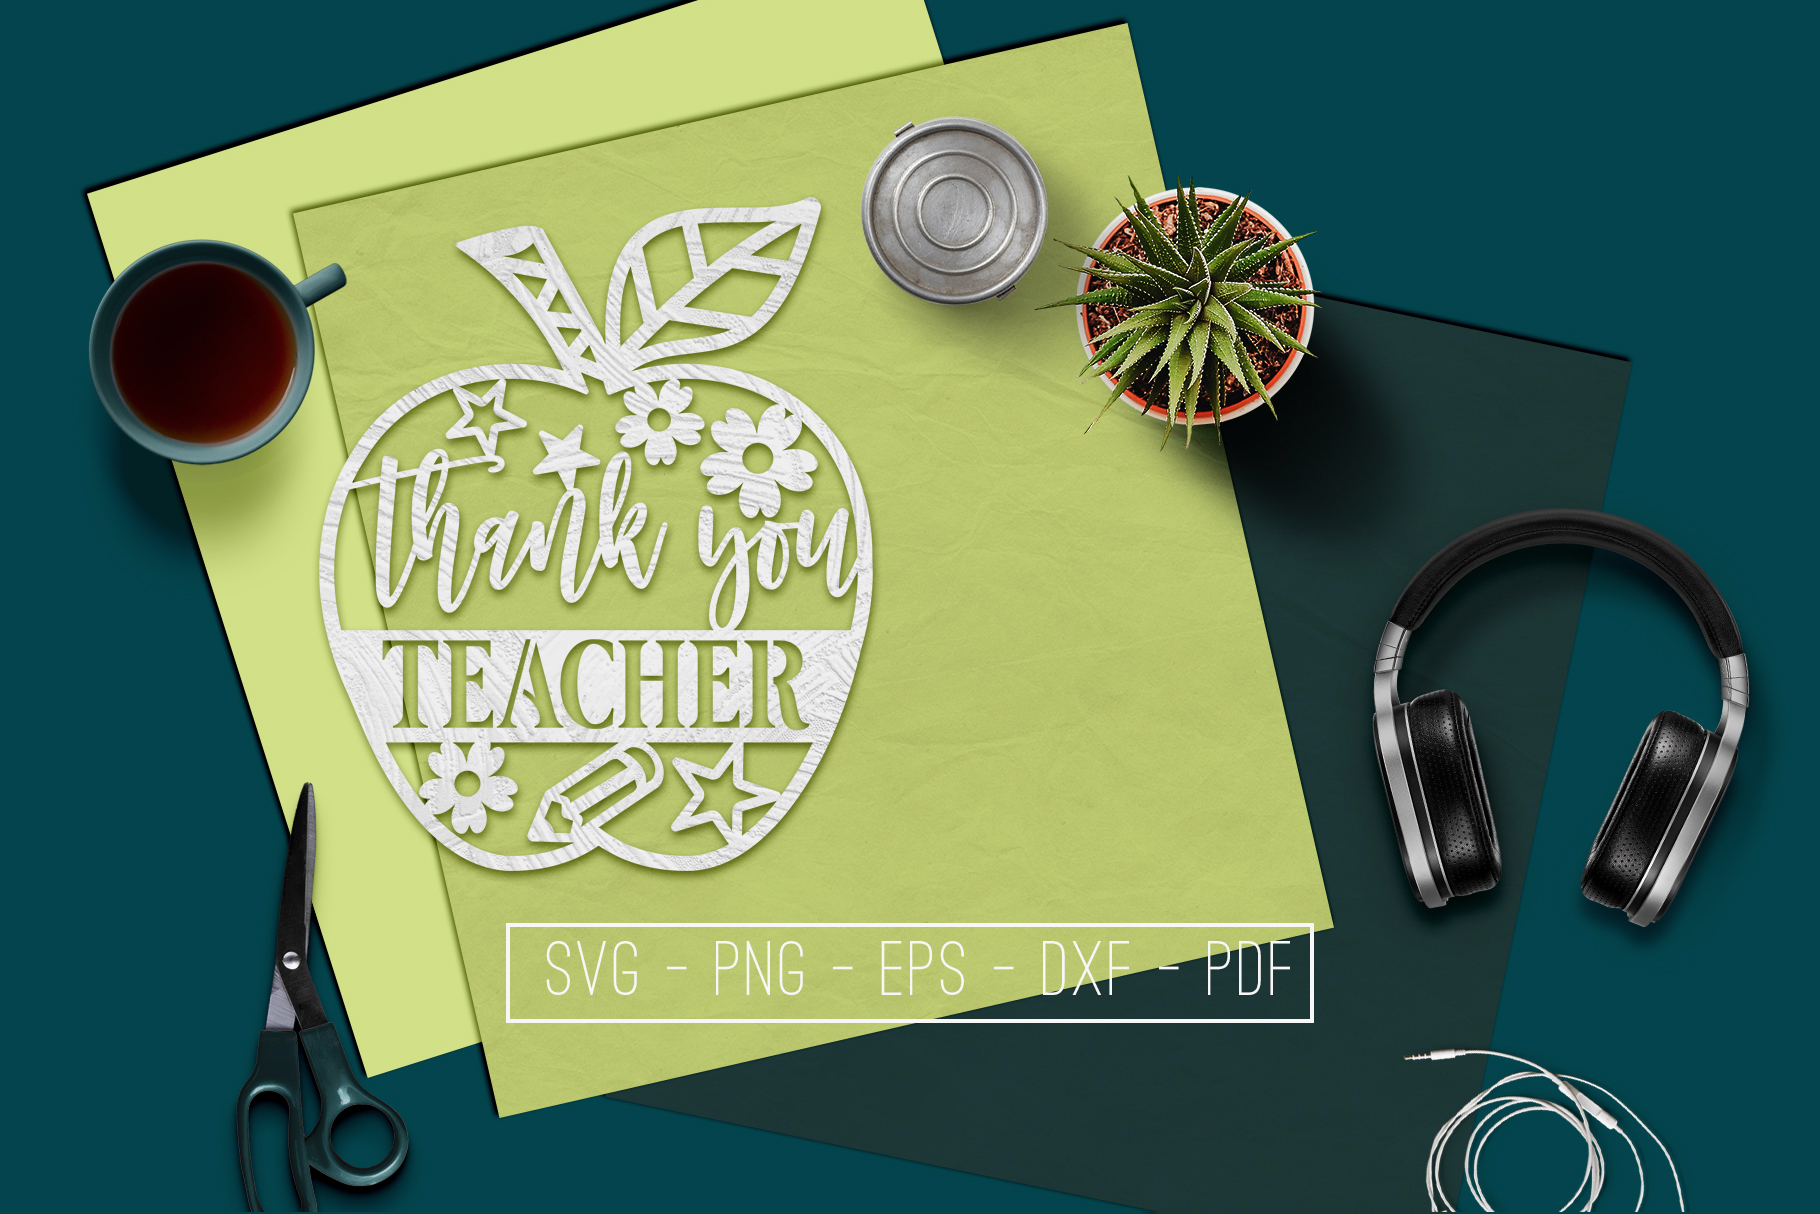 Thank You Teacher Paper Cut Template, School SVG, PDF, DXF example image 1